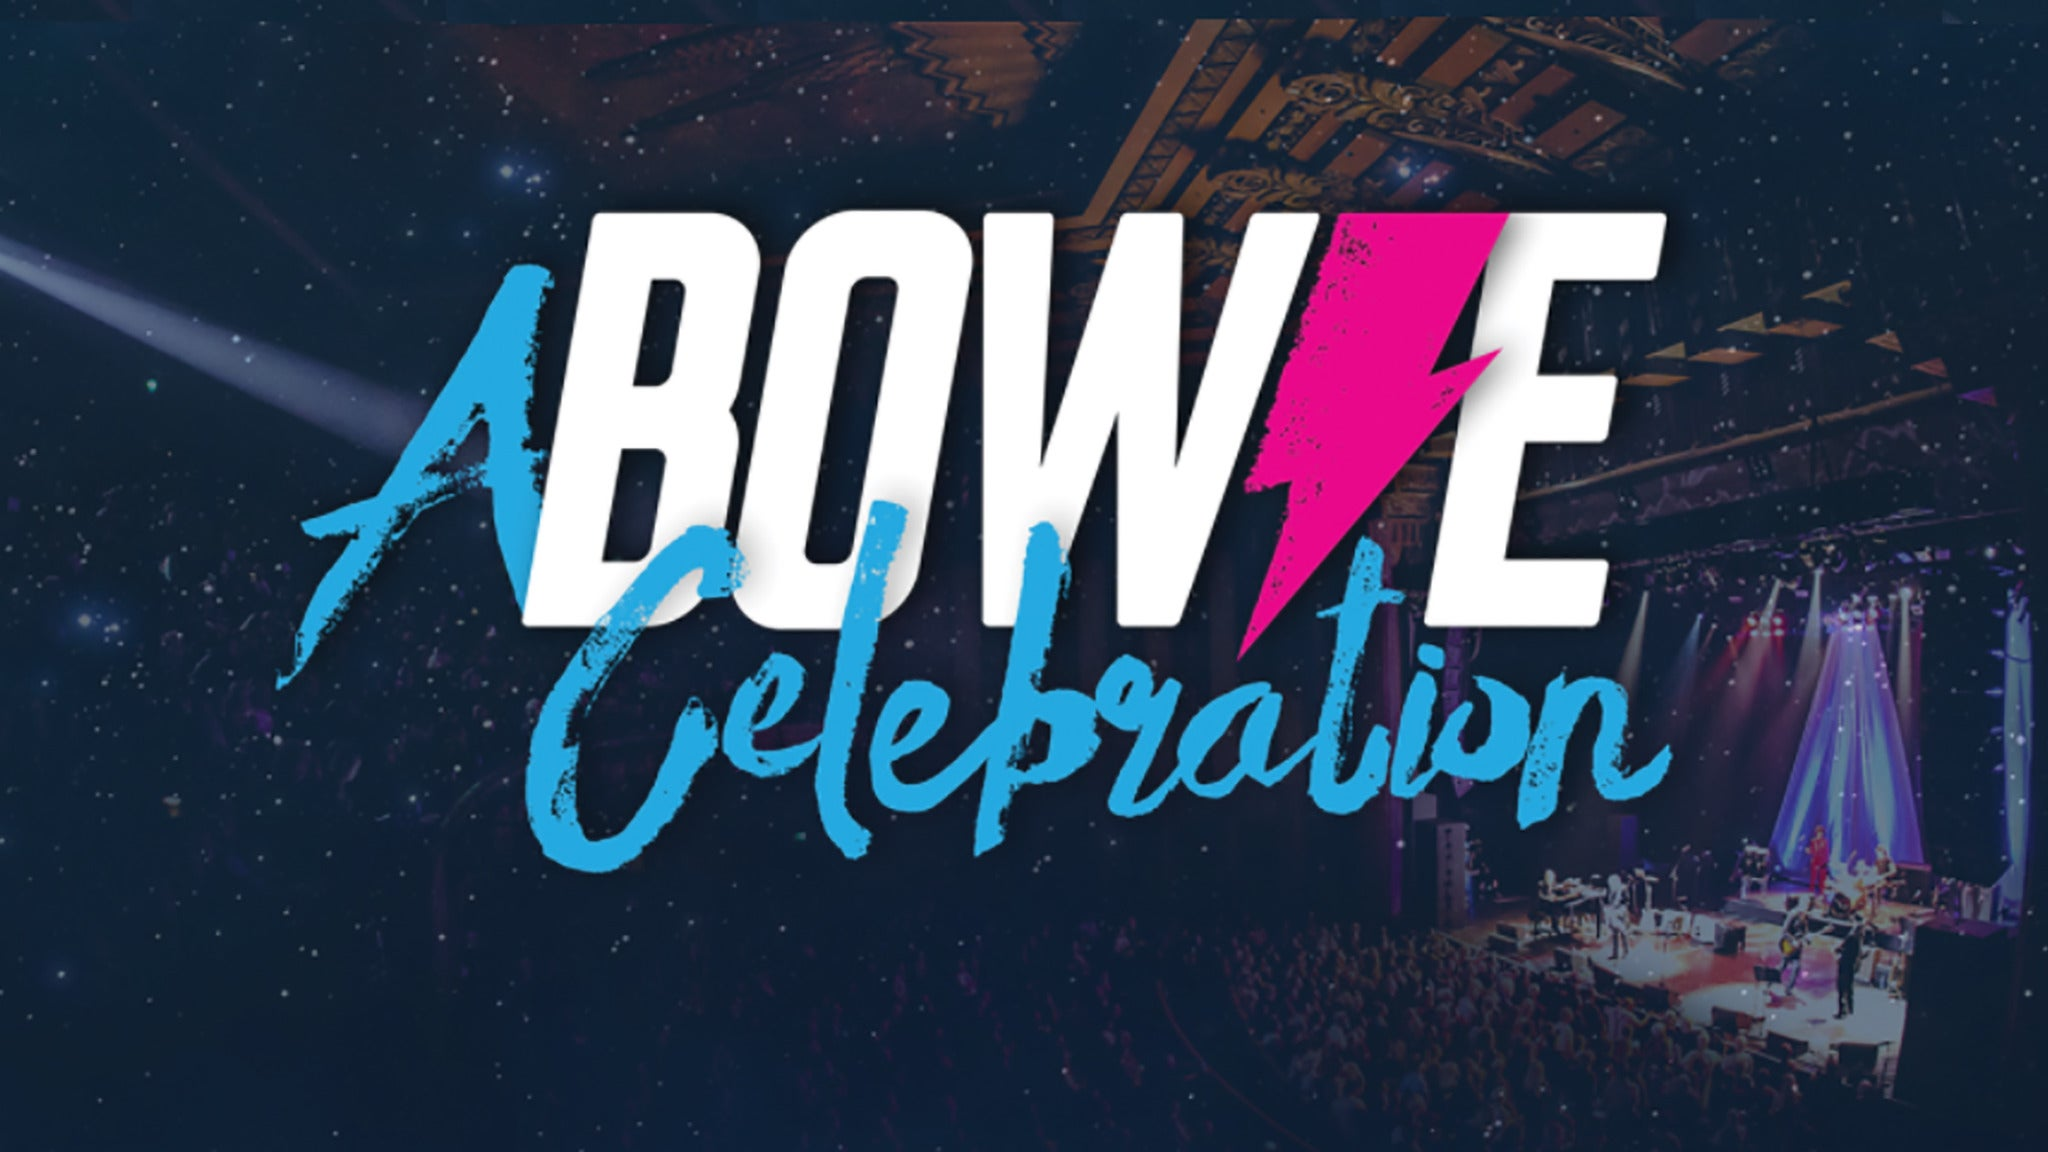 A Bowie Celebration at Silver Legacy Casino